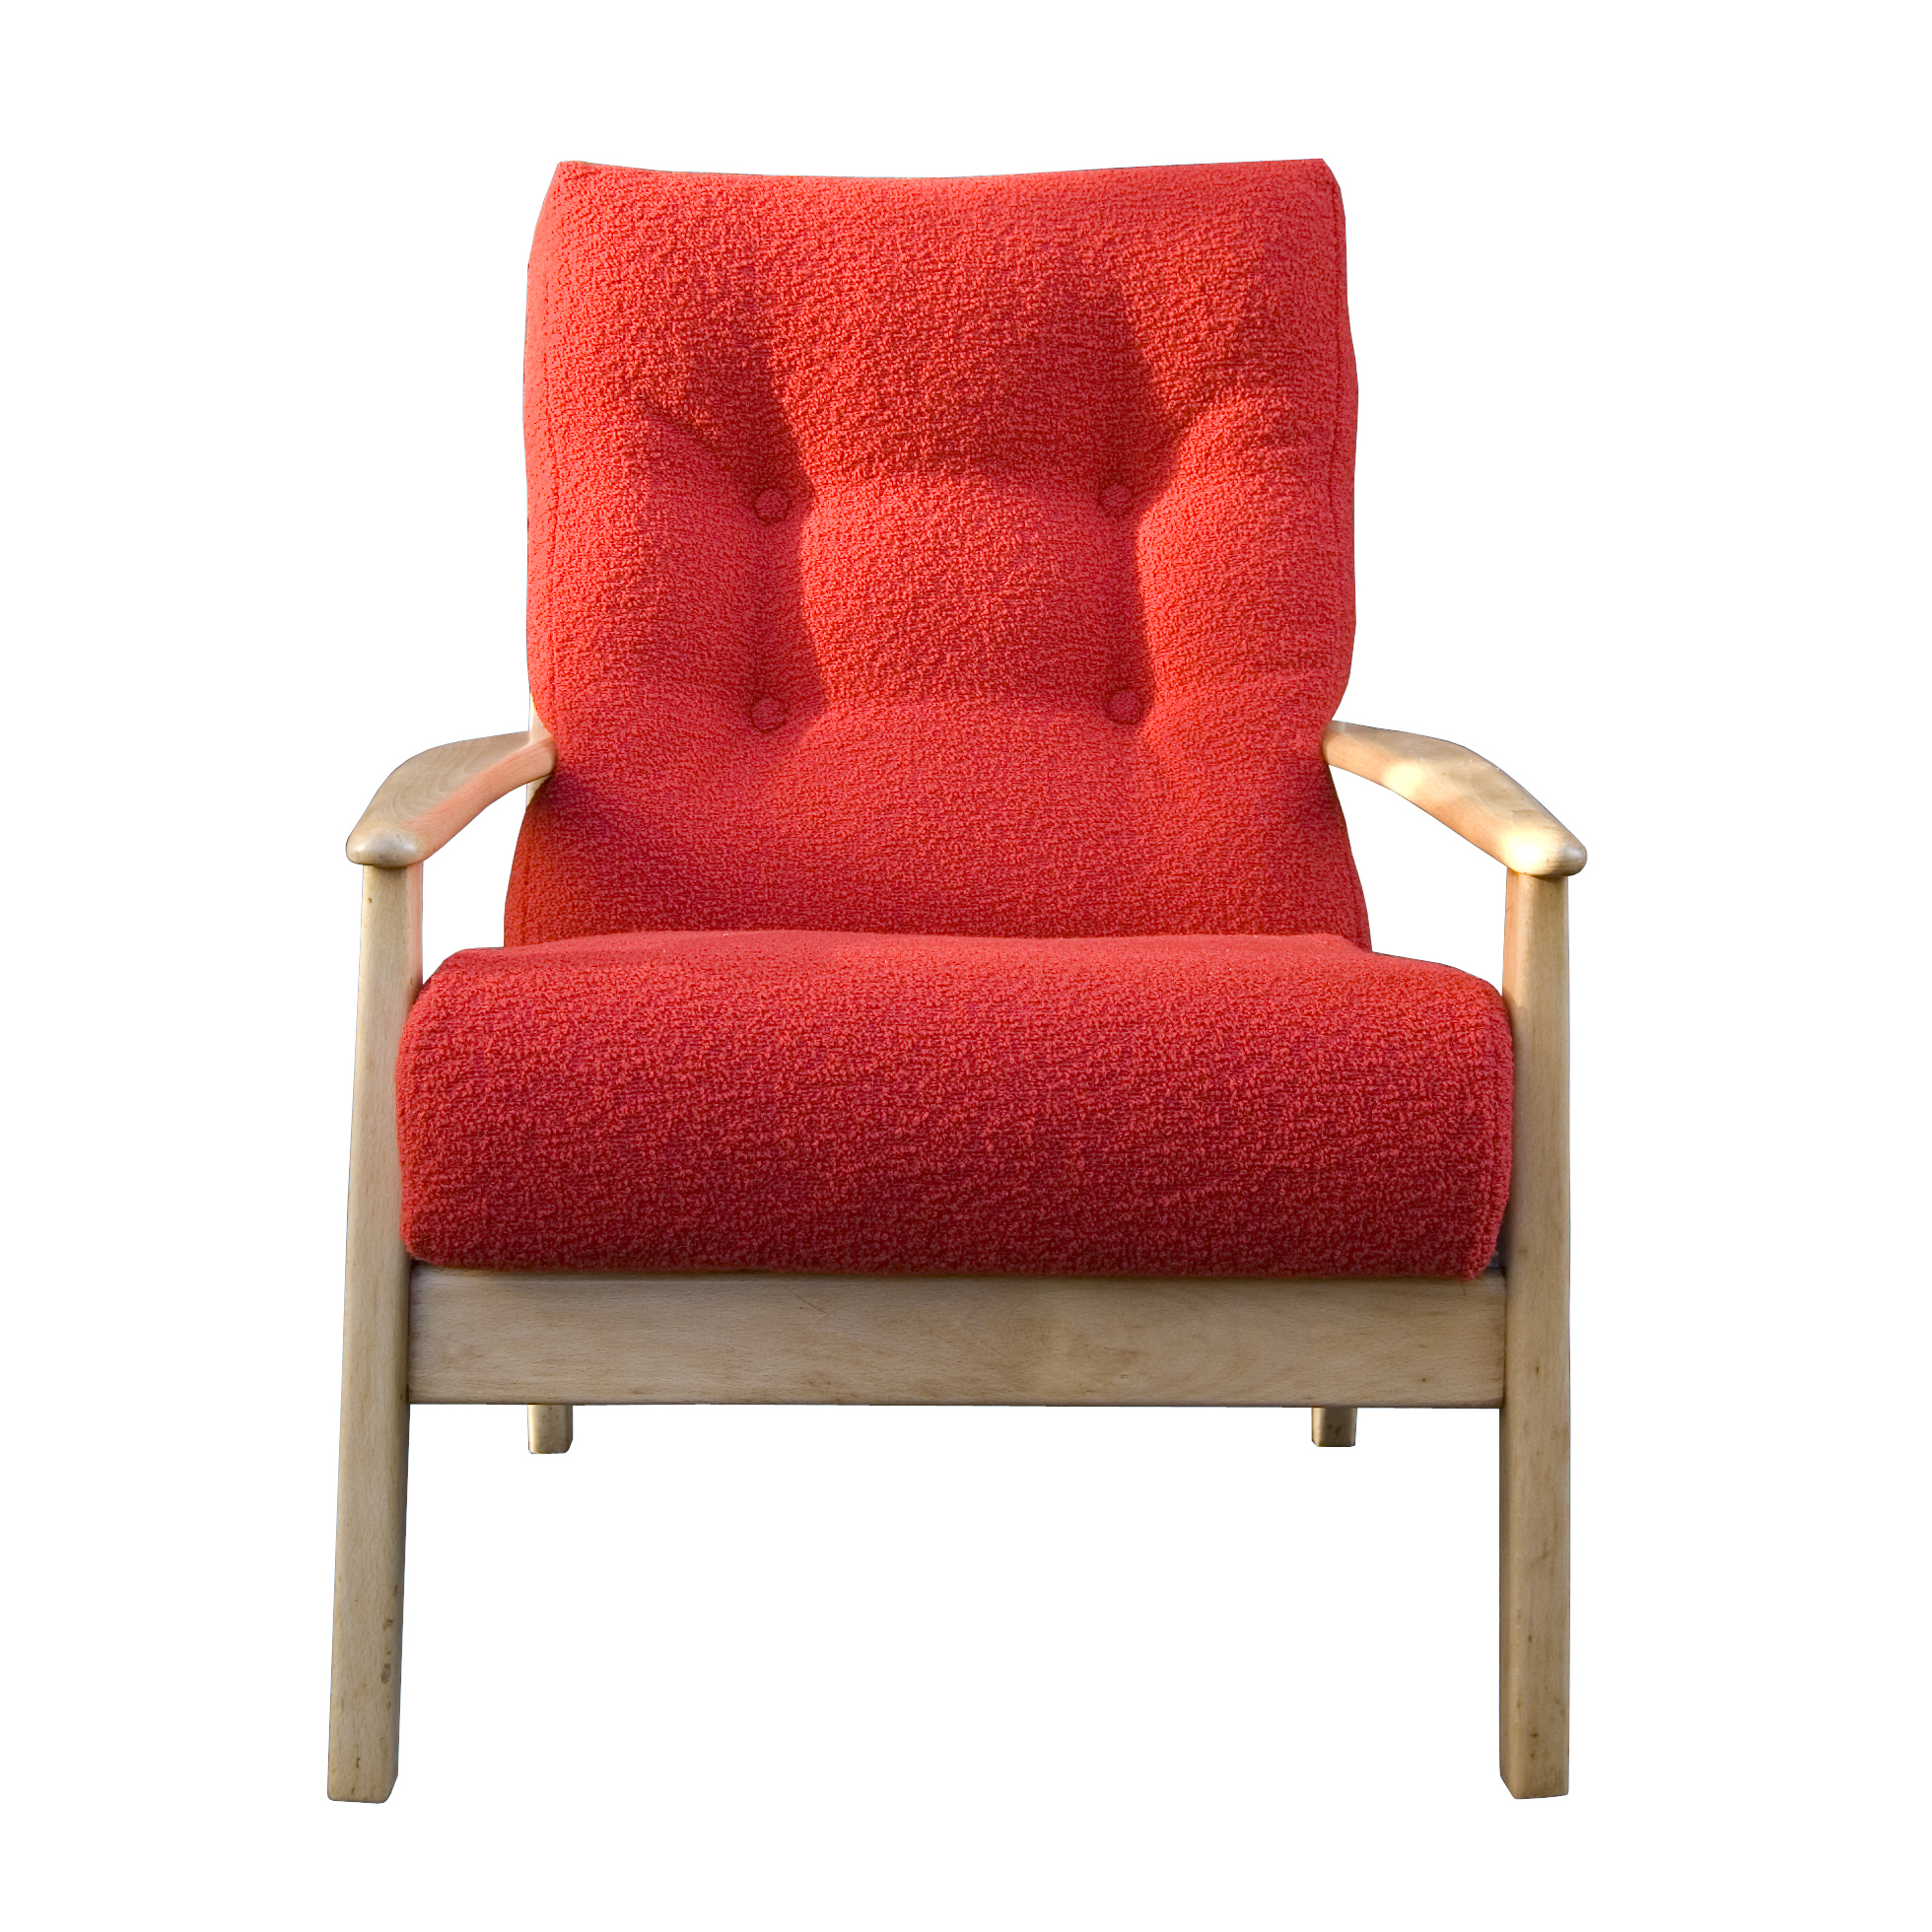 bute_parker_knoll_armchair_glasgow_bobbin_fleck_furniture_upholstery_re-upholstery_traditional_modern_cane_mid-century_vintage_restore_fabric_textiles.jpg